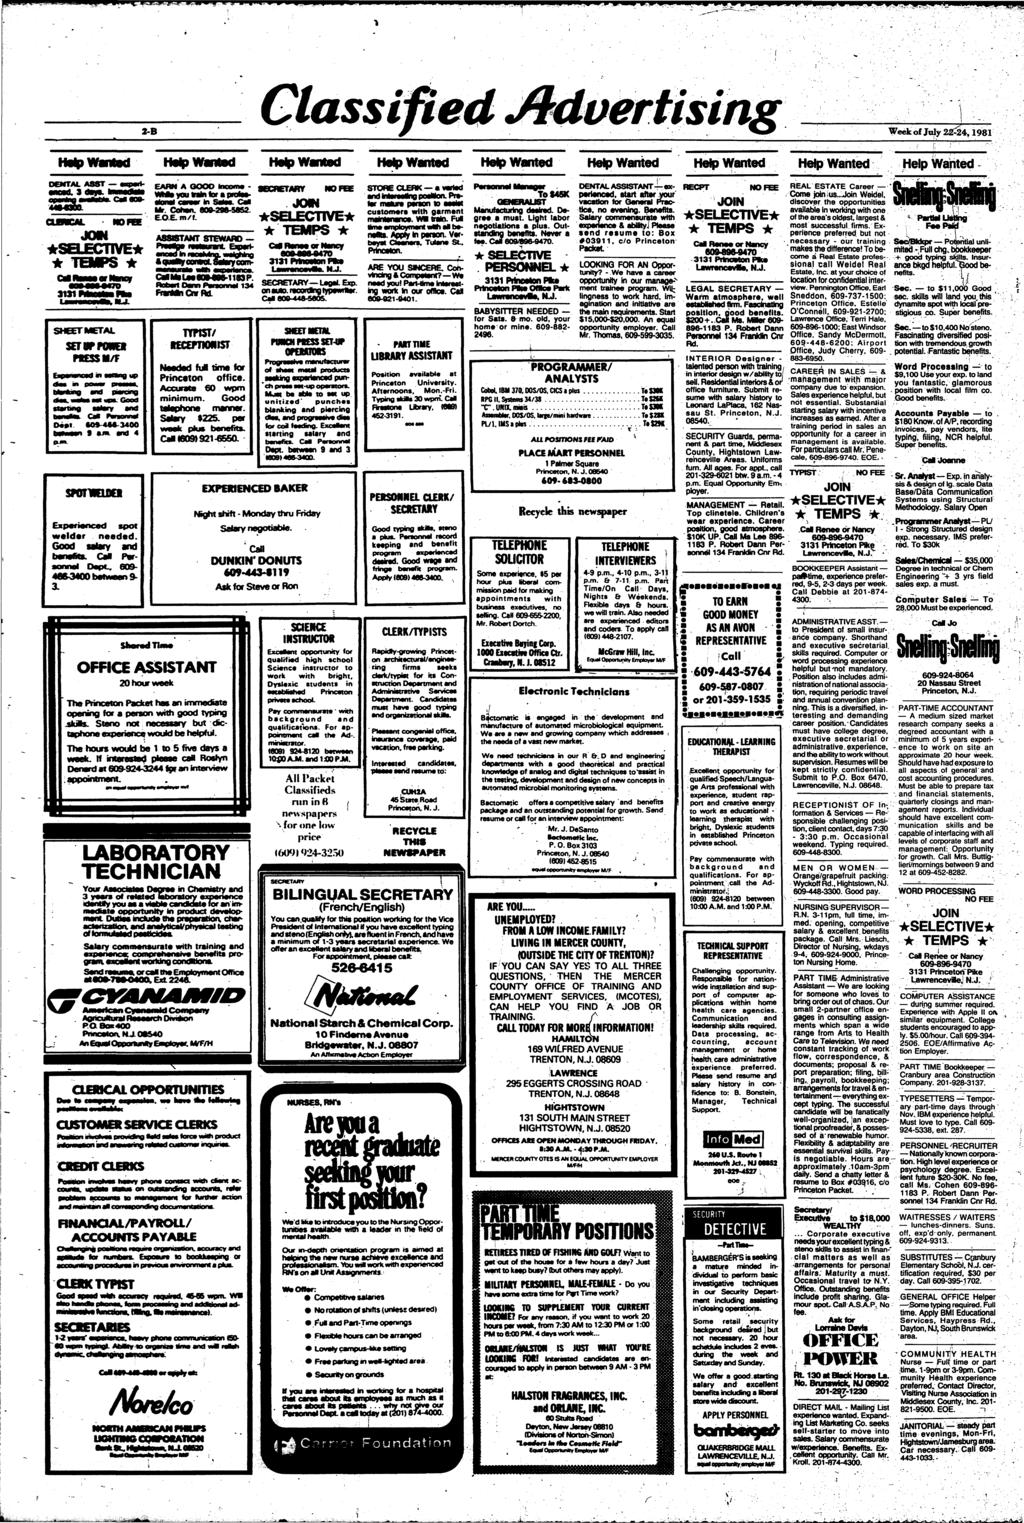 For stores and offices pdf l 2 b classified week of july 2 241981 http vantod http wottod fandeluxe Choice Image